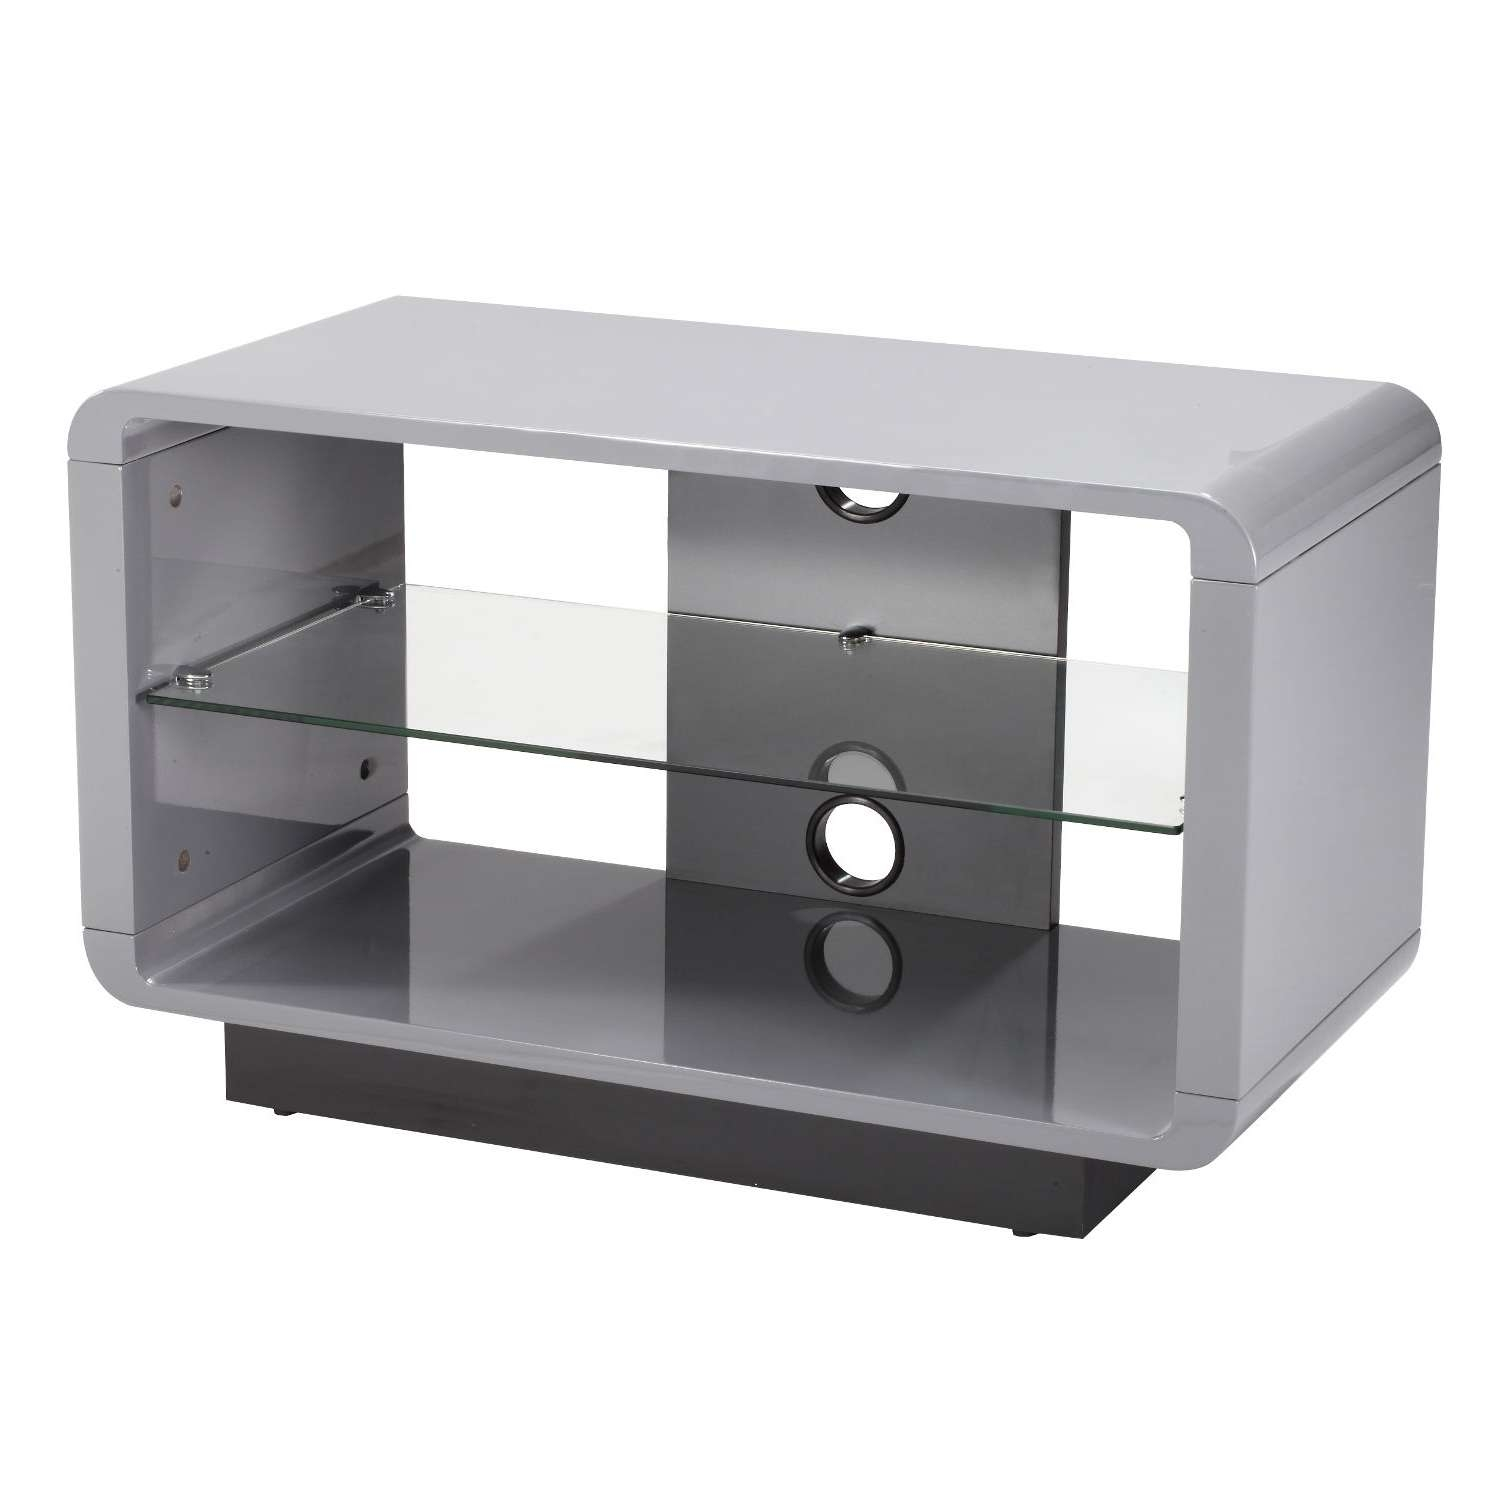 Tv : White Gloss Oval Tv Stands Pleasurable White Gloss Oval Tv For Oval White Tv Stands (View 14 of 20)